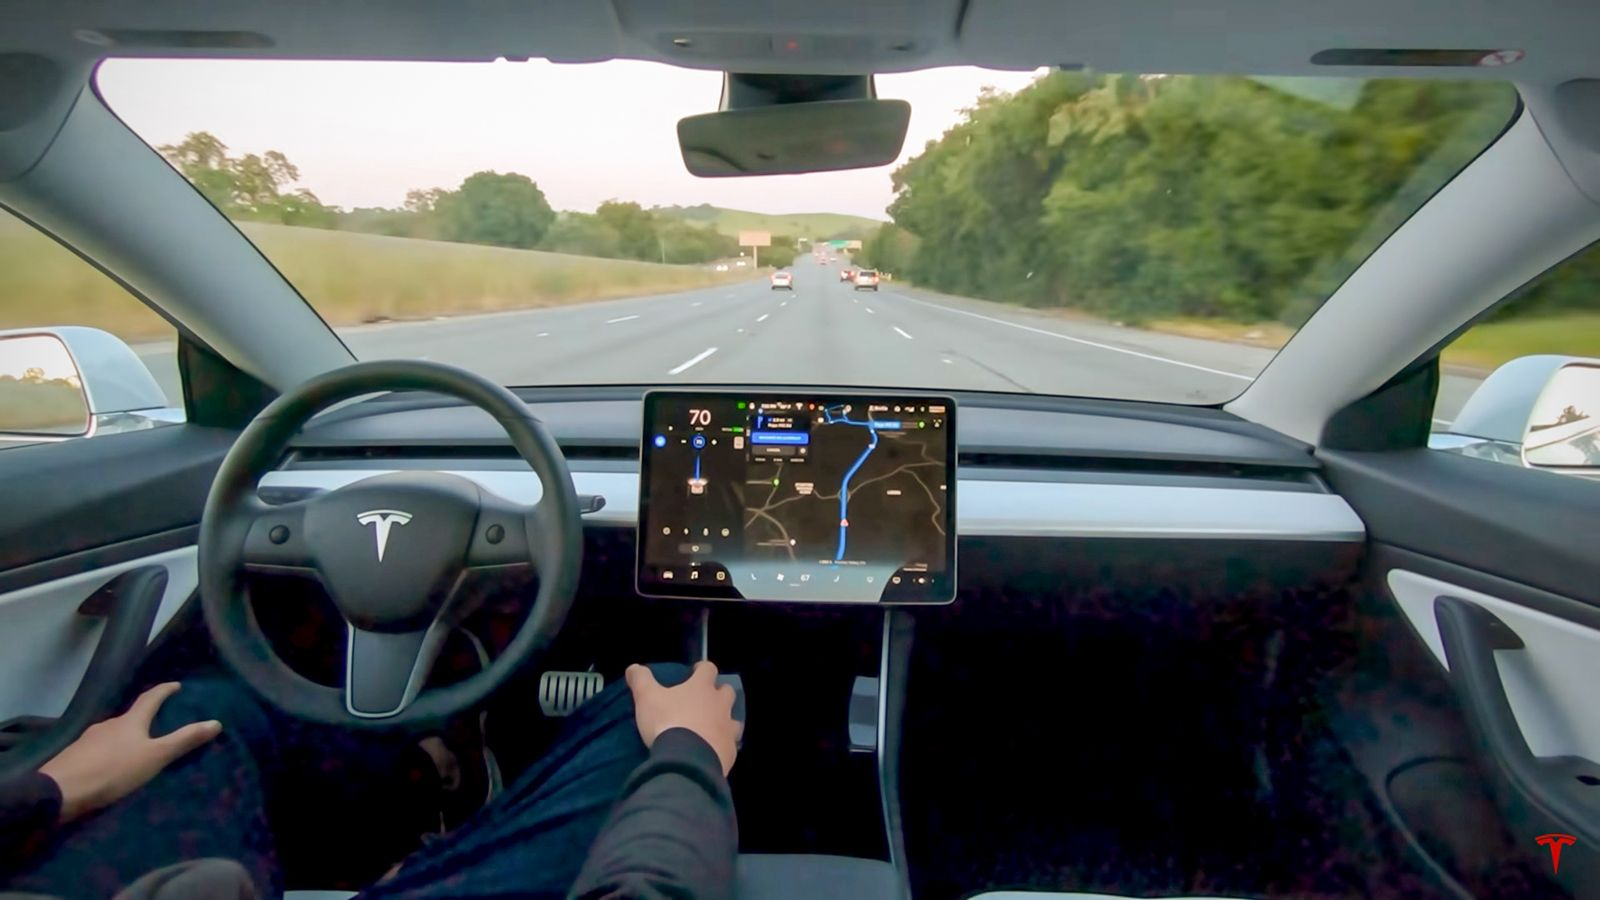 autoweek.com - Jay Ramey - Tesla Could Expand 'Full Self Driving' Software to More Cars in Weeks